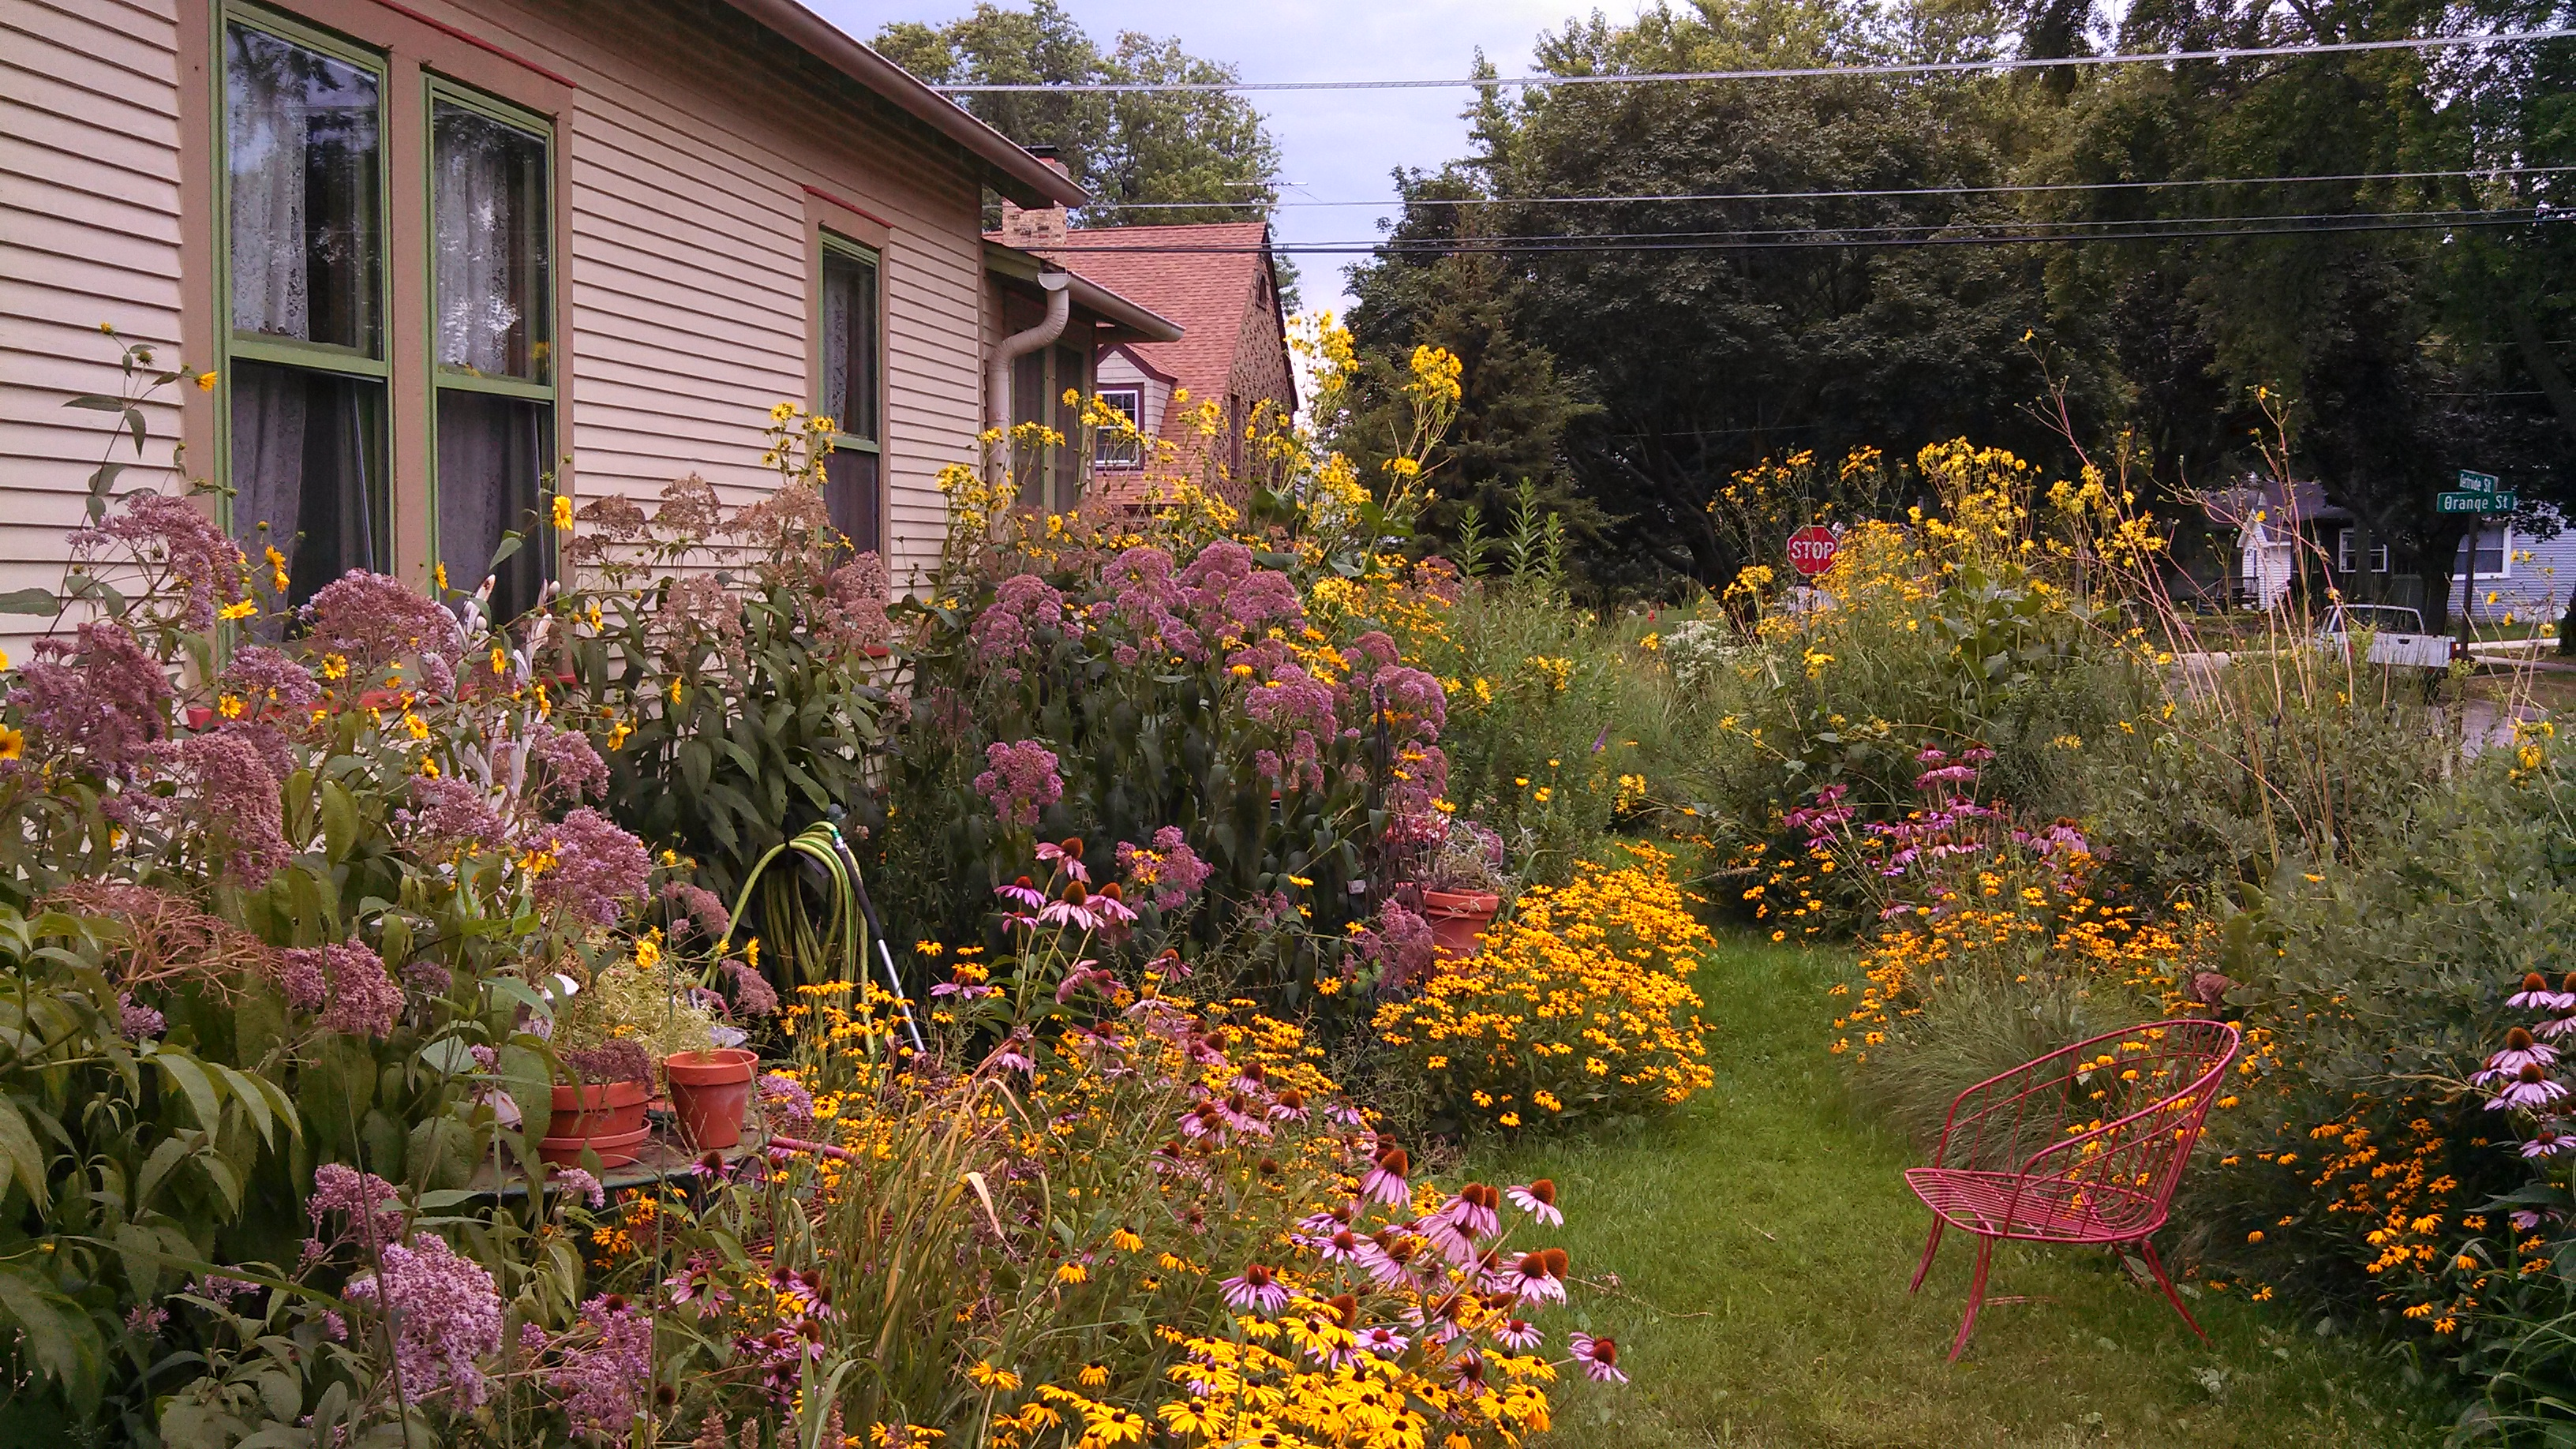 A Visit To The Garden Of Pat Hill – gardeninacity